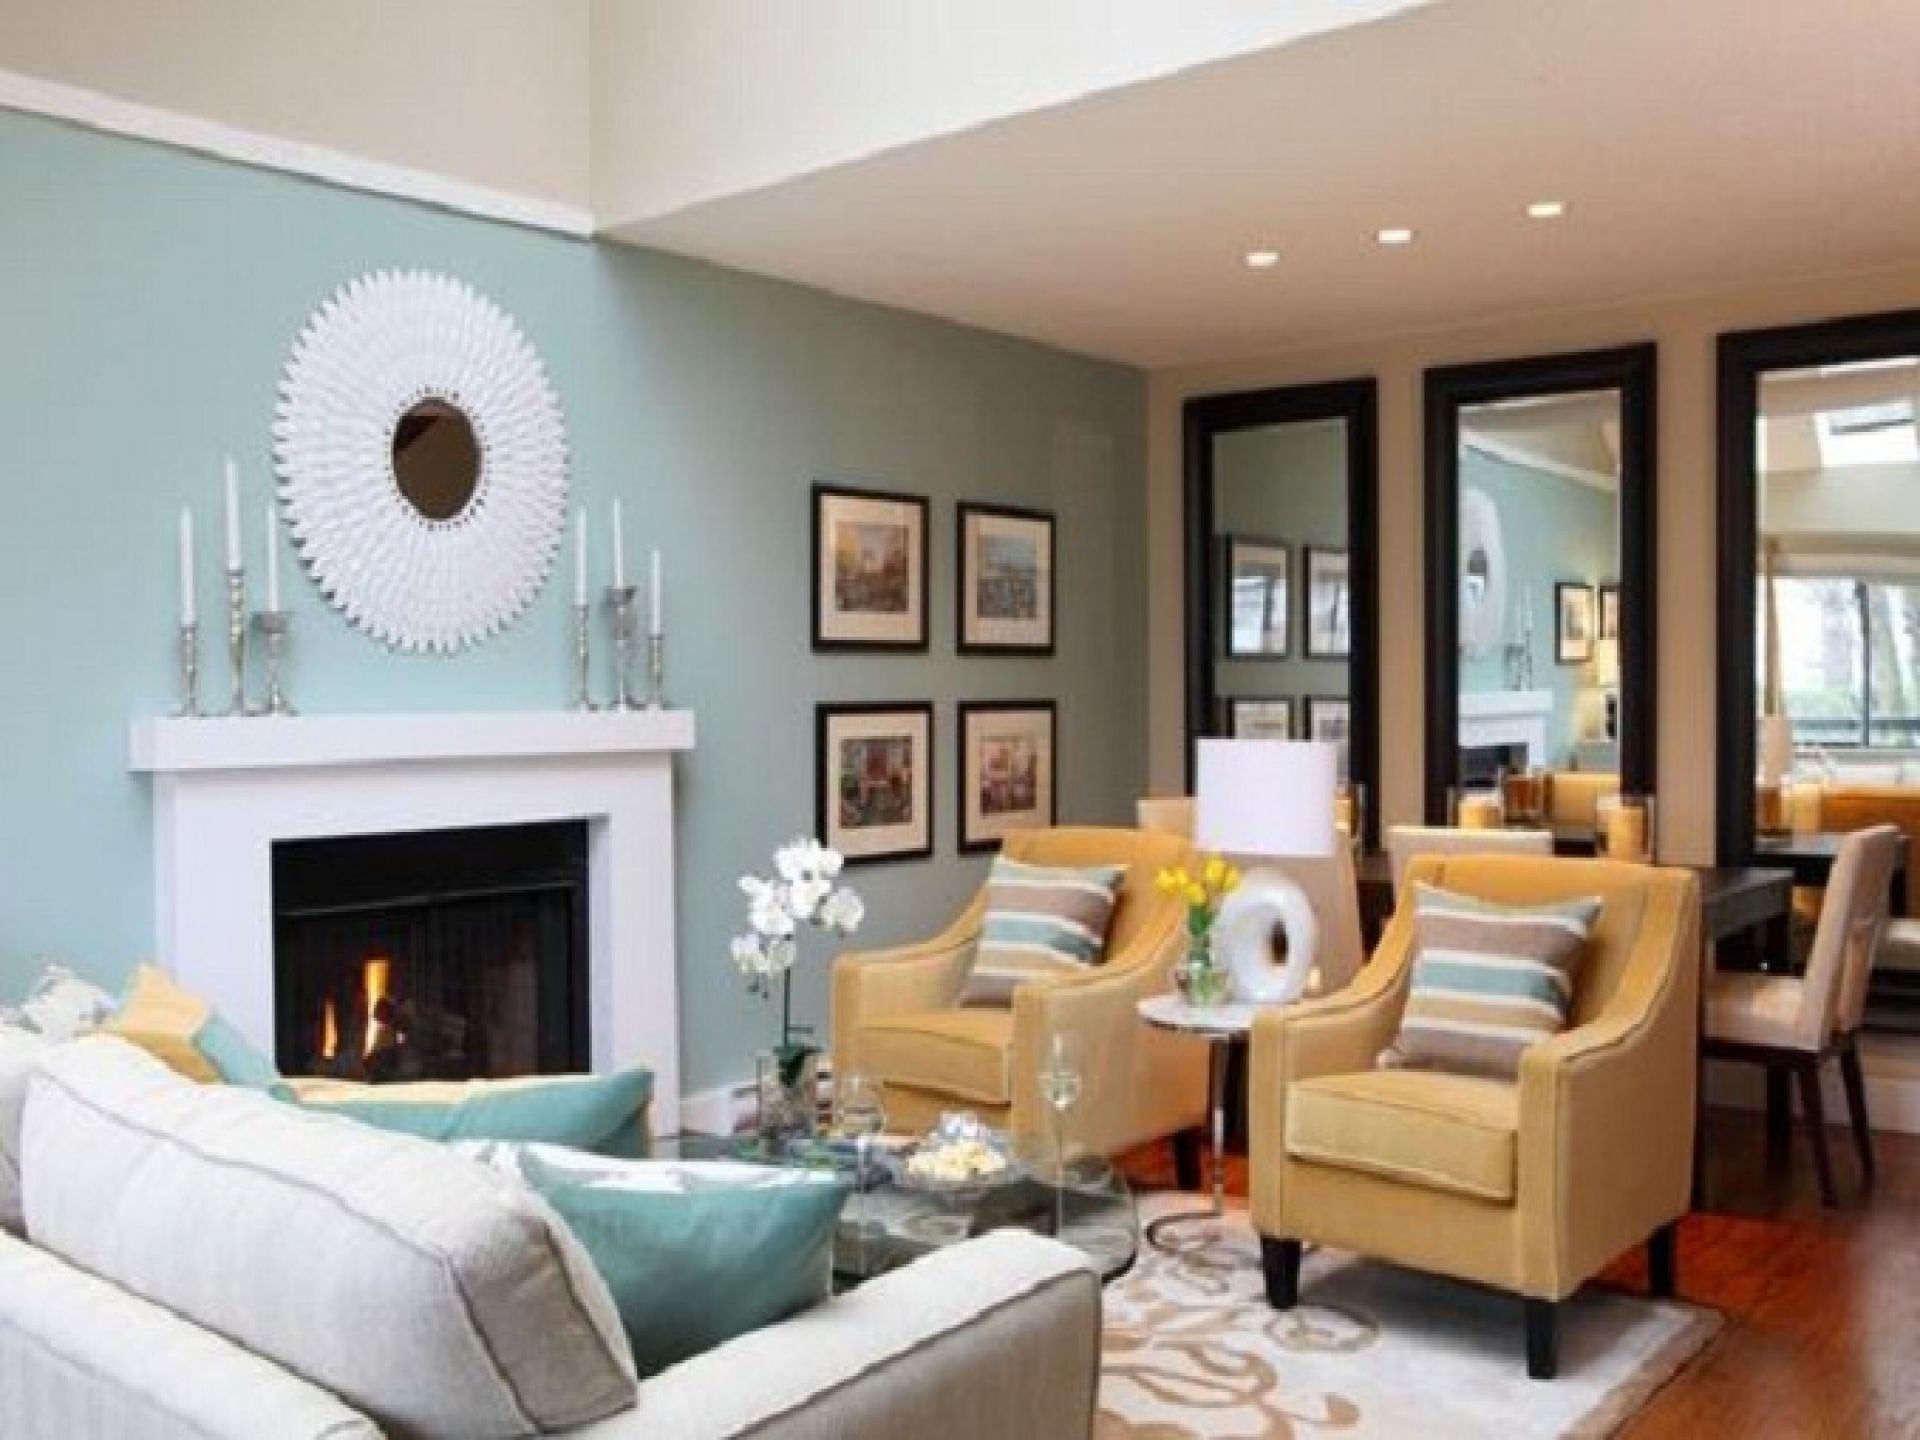 Best Small Living Room Colors Images - Home Design Ideas - vleck.us